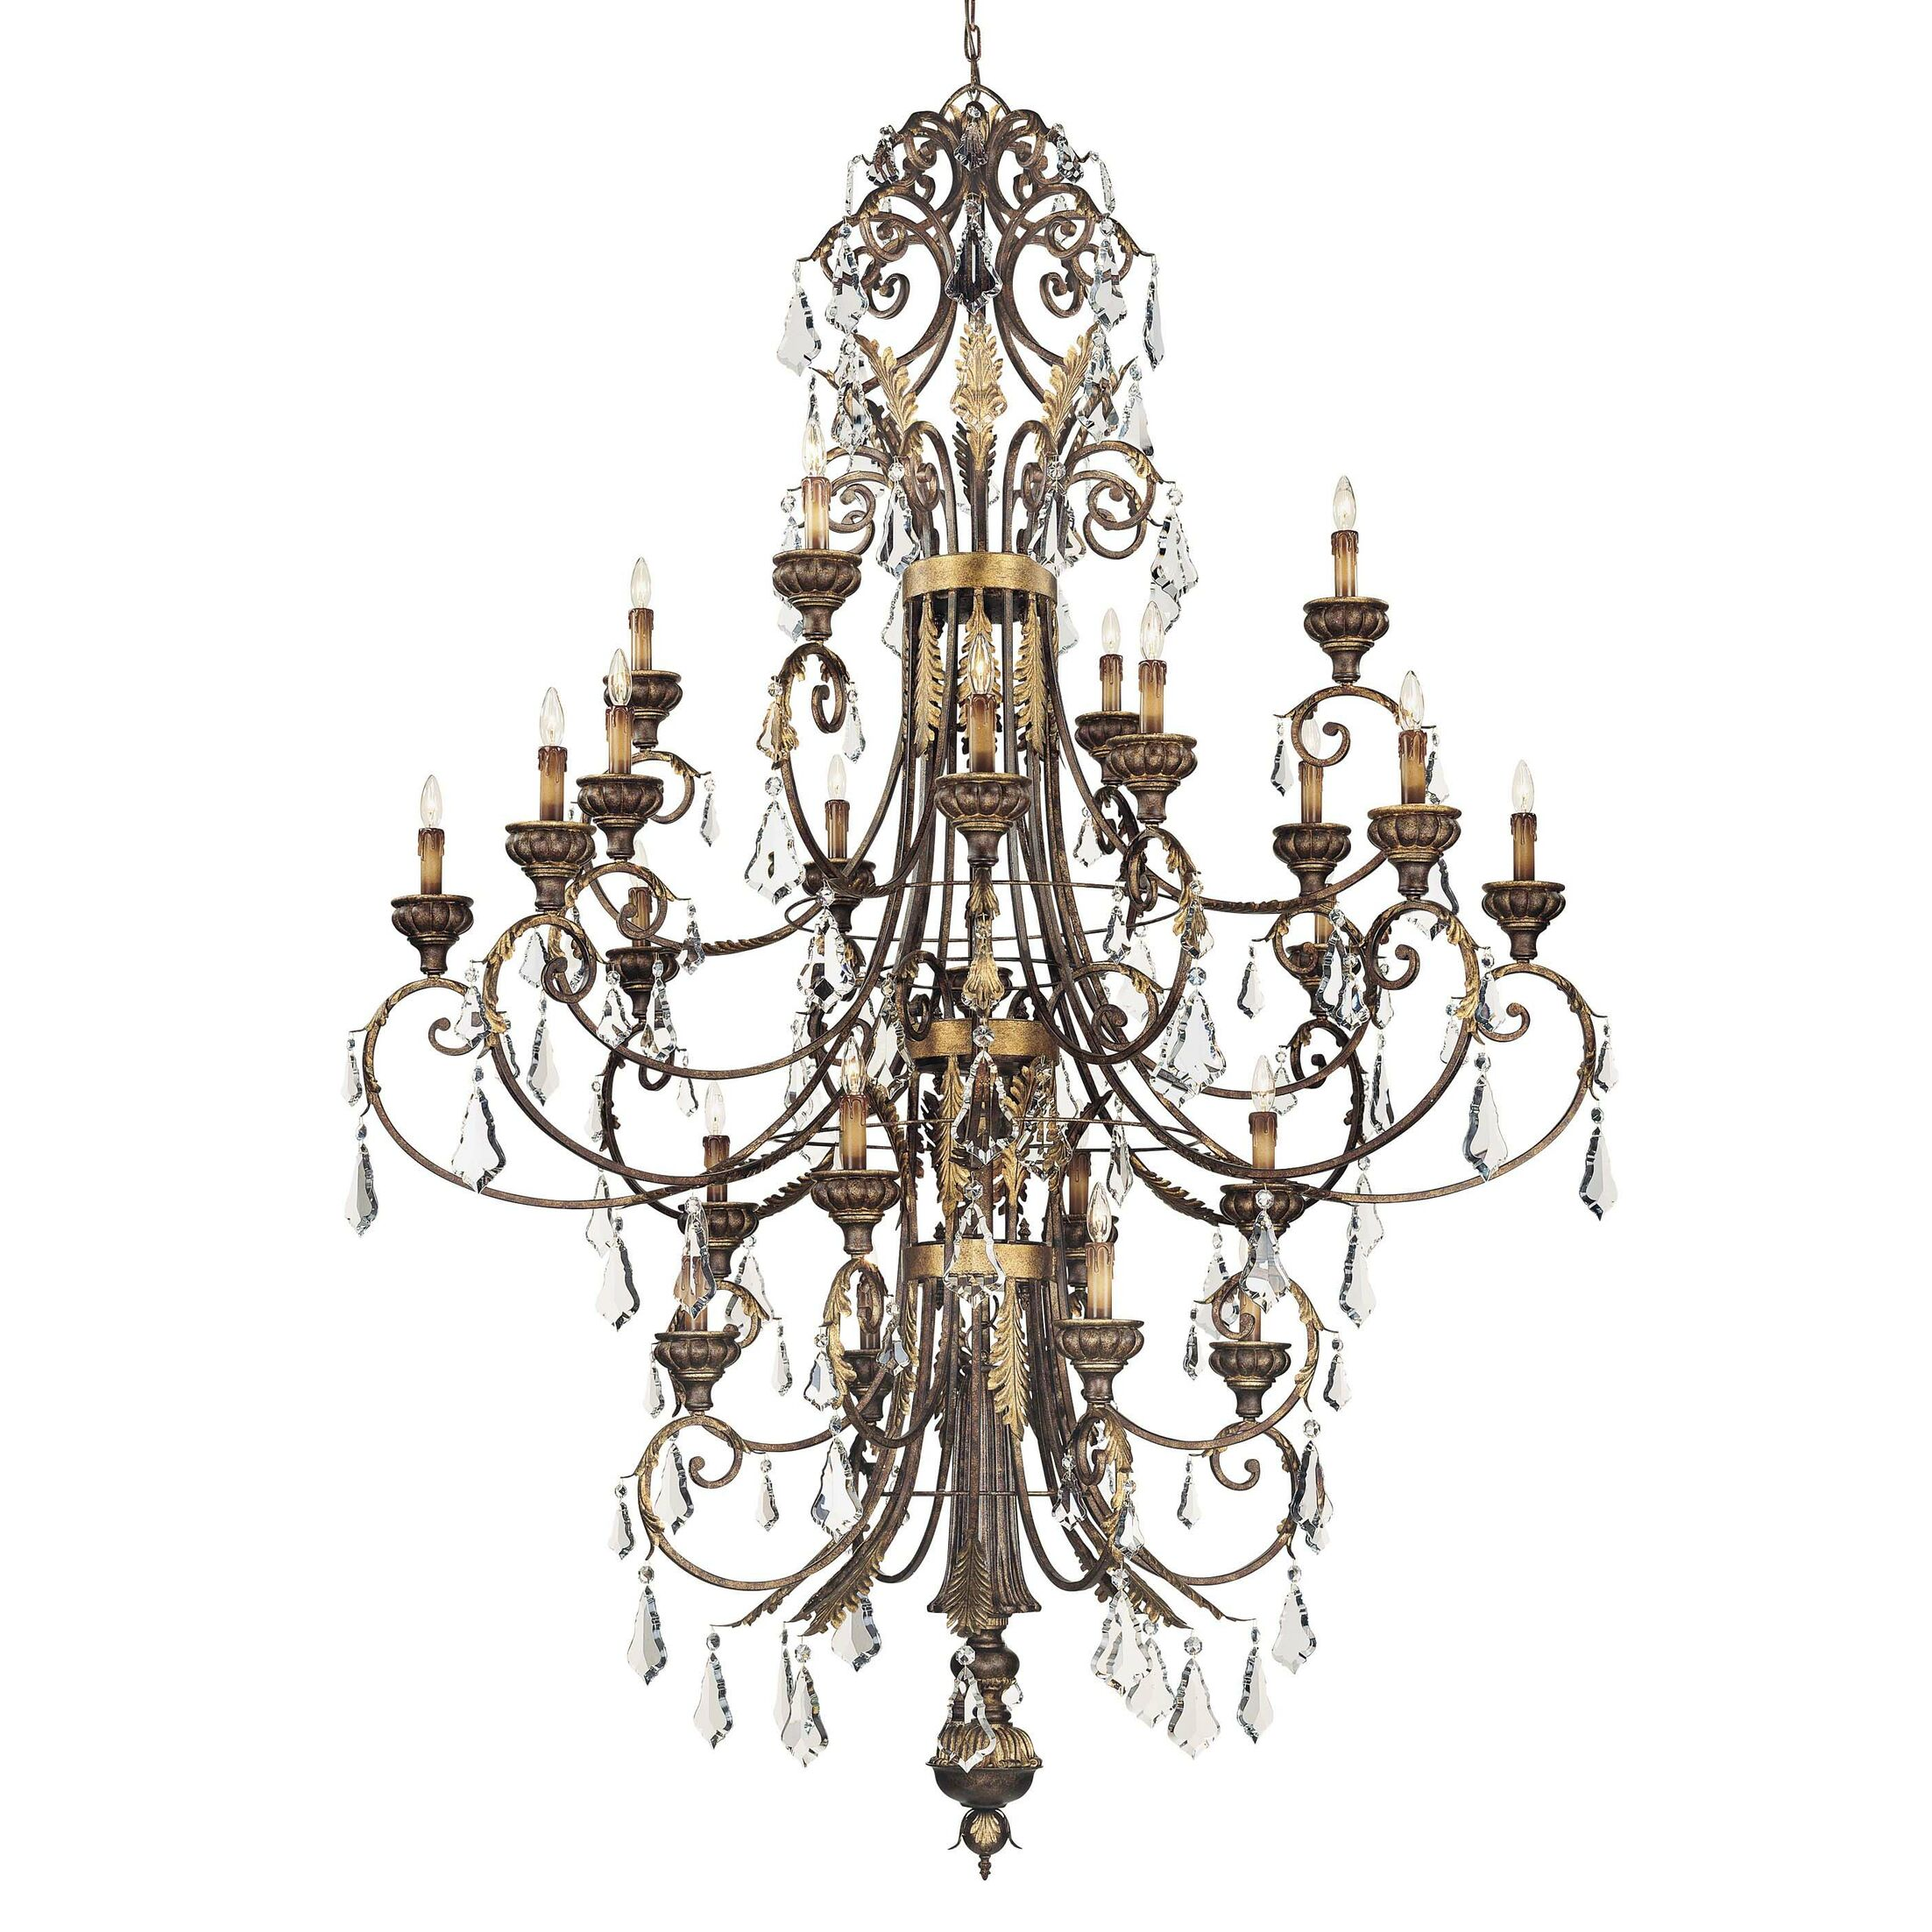 24-Light Candle Style Chandelier